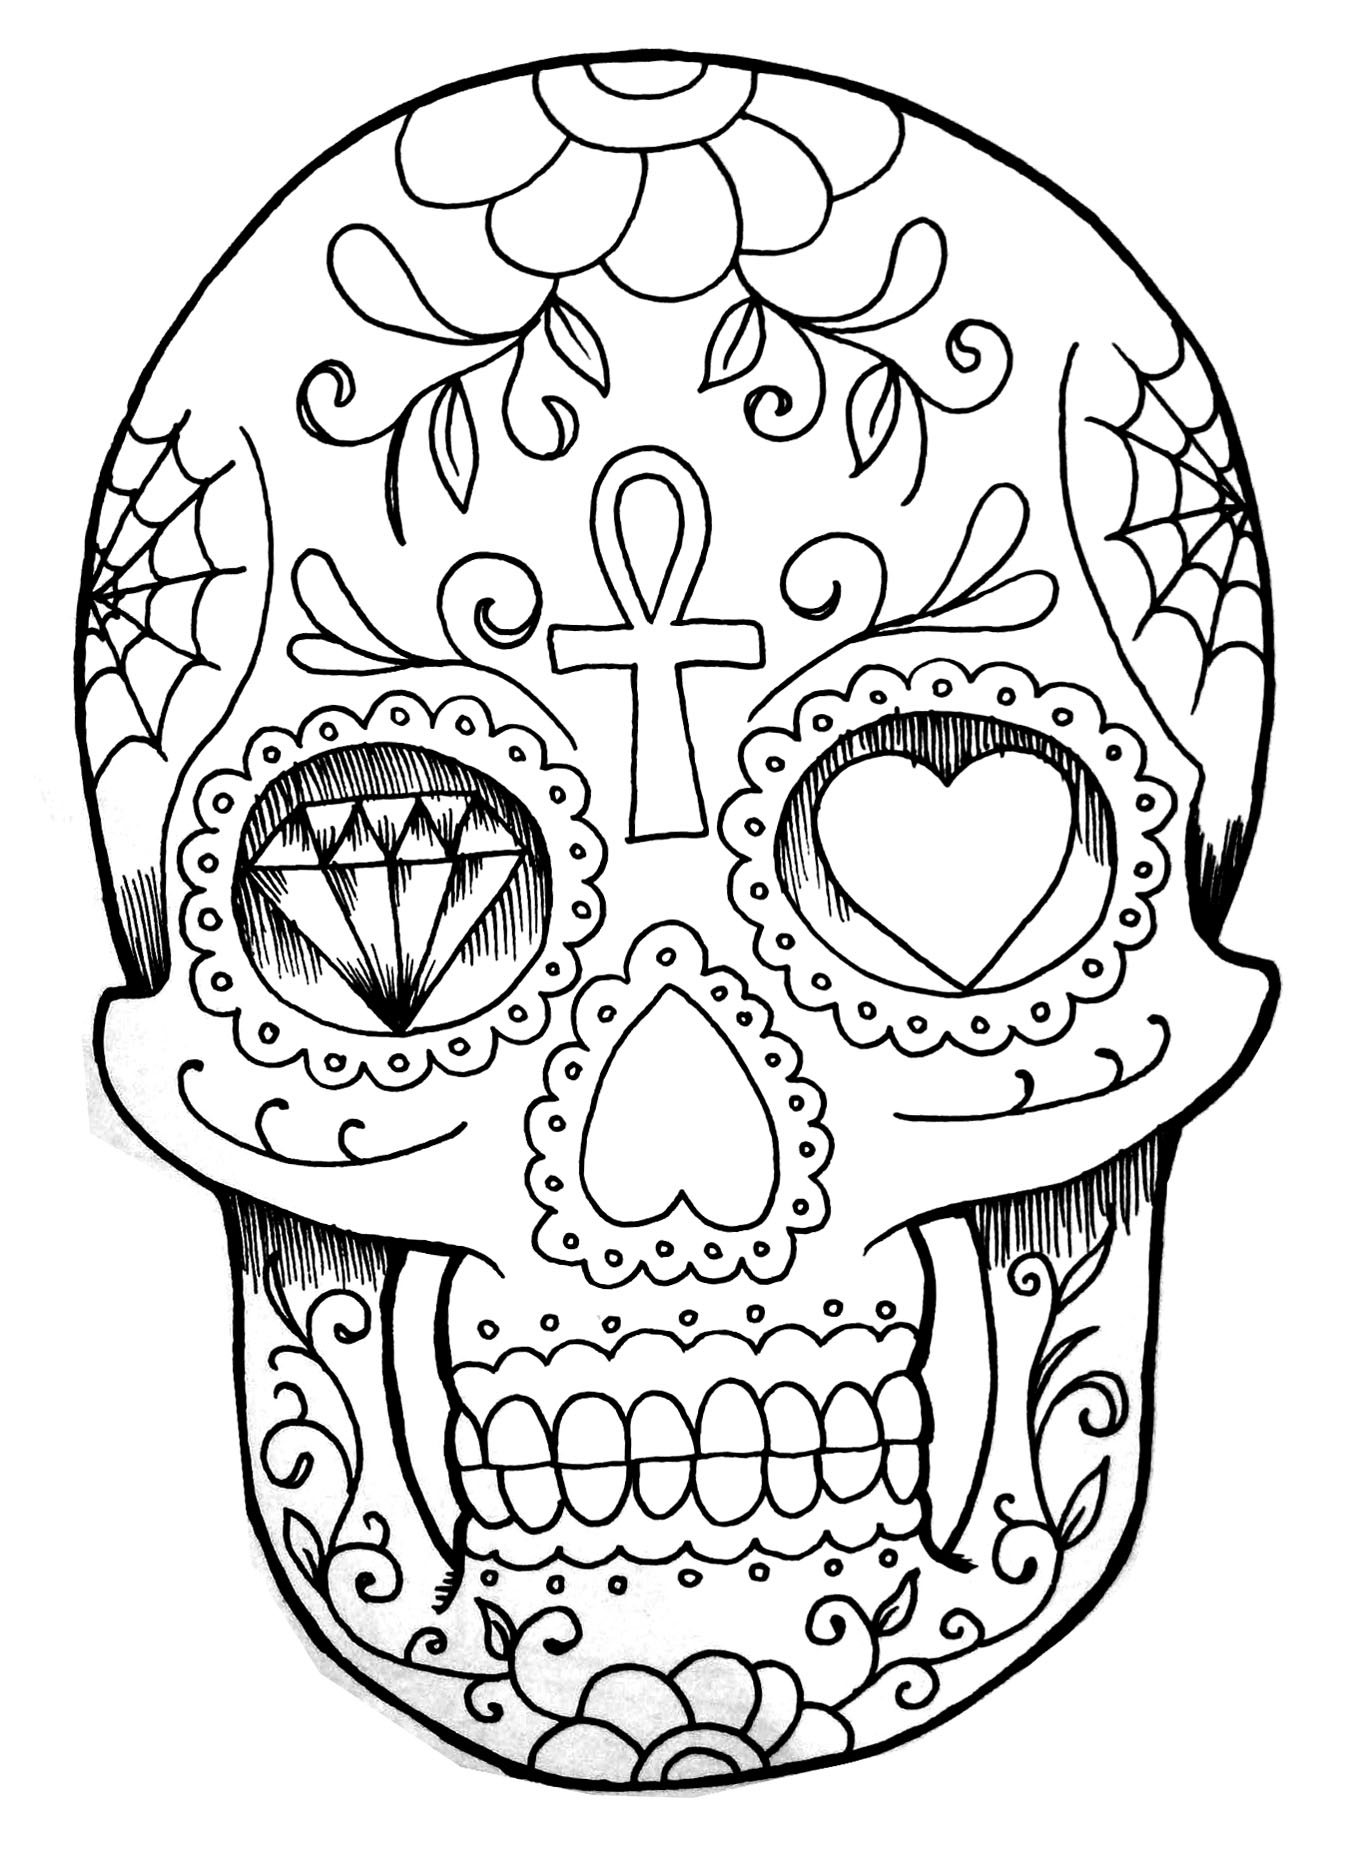 Tattoo of a skull with various